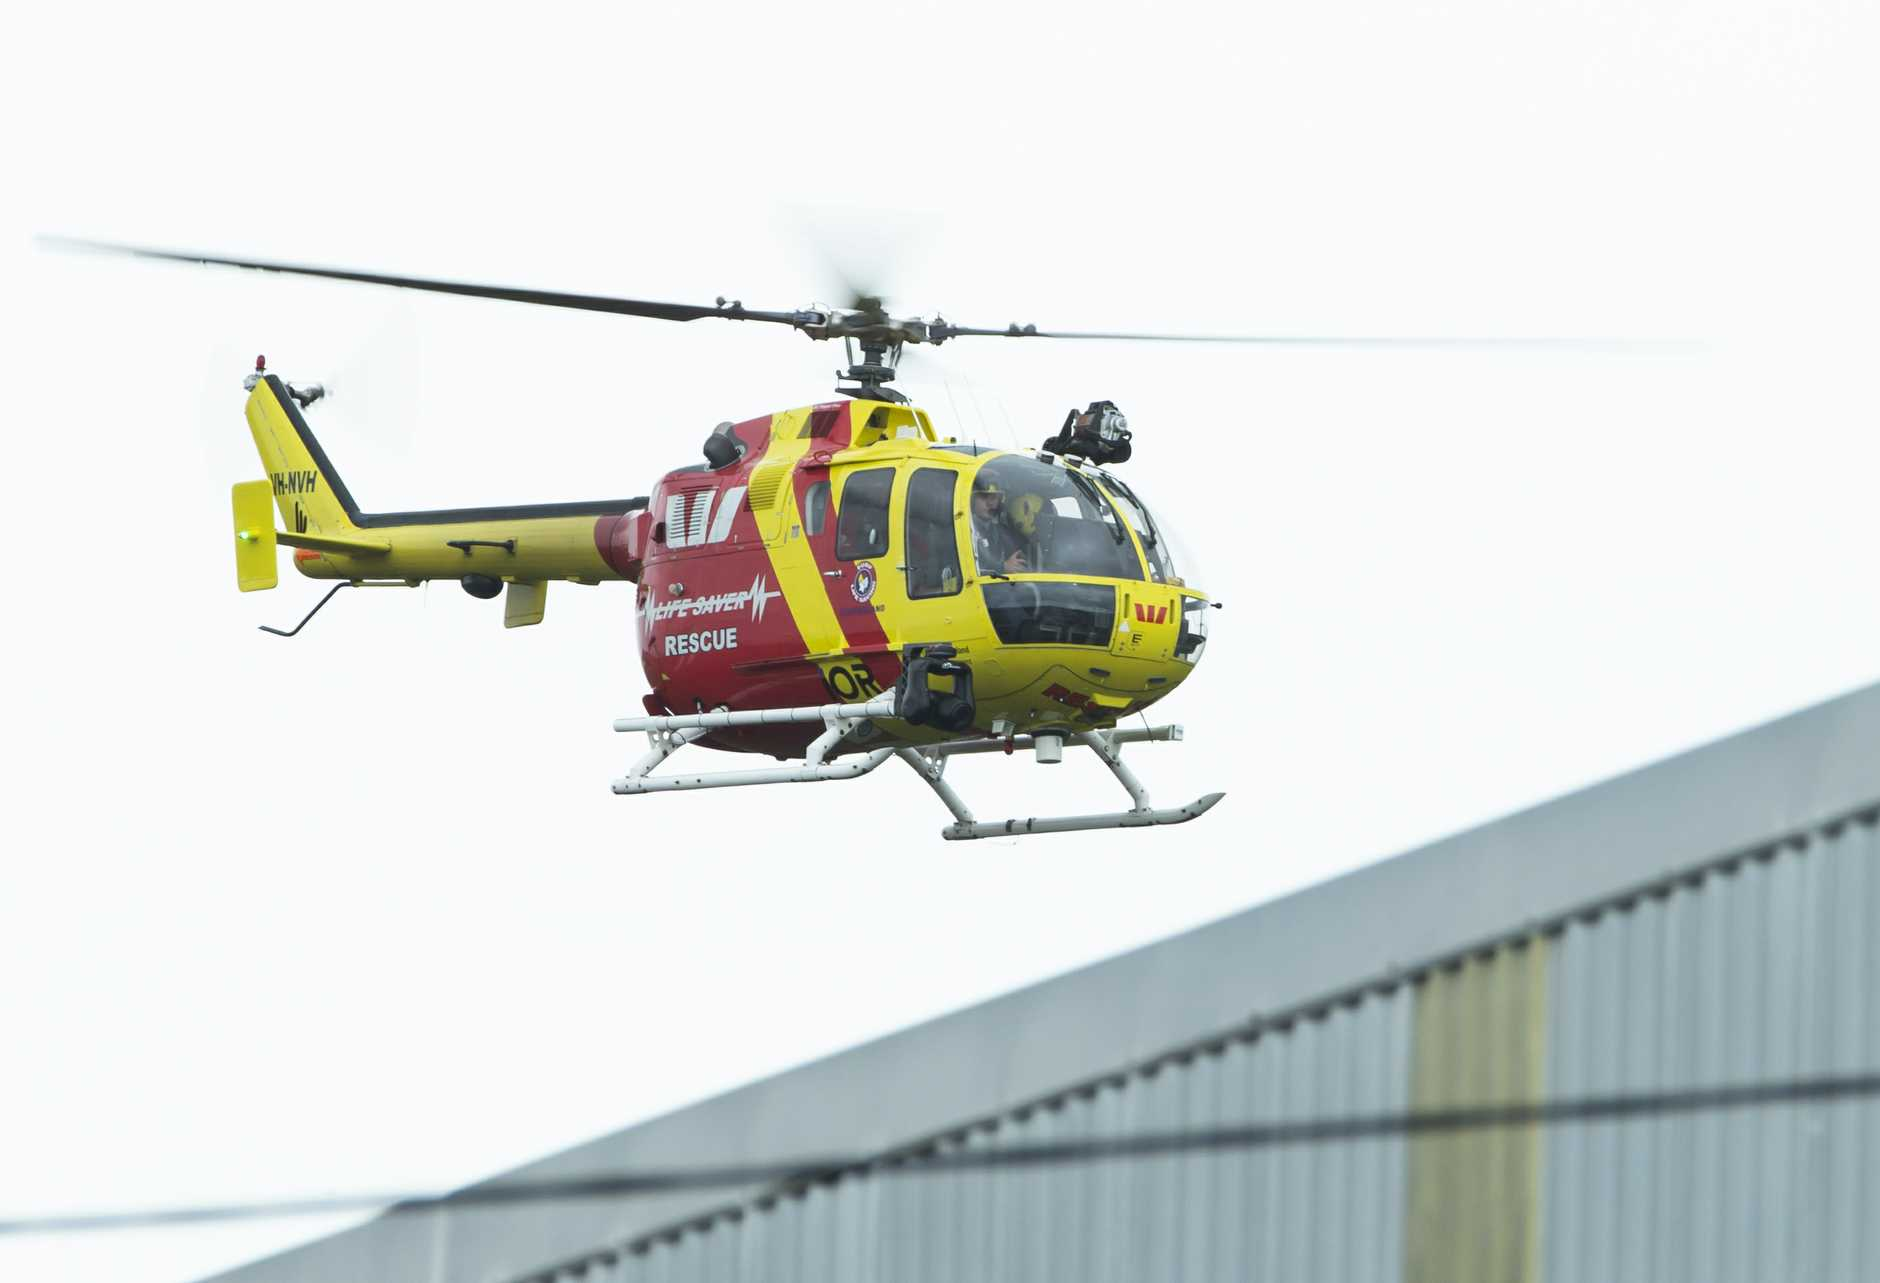 A rescue helicopter returns to base at Caloundra Aerodrome where a charter plane departed on Wednesday afternoon.